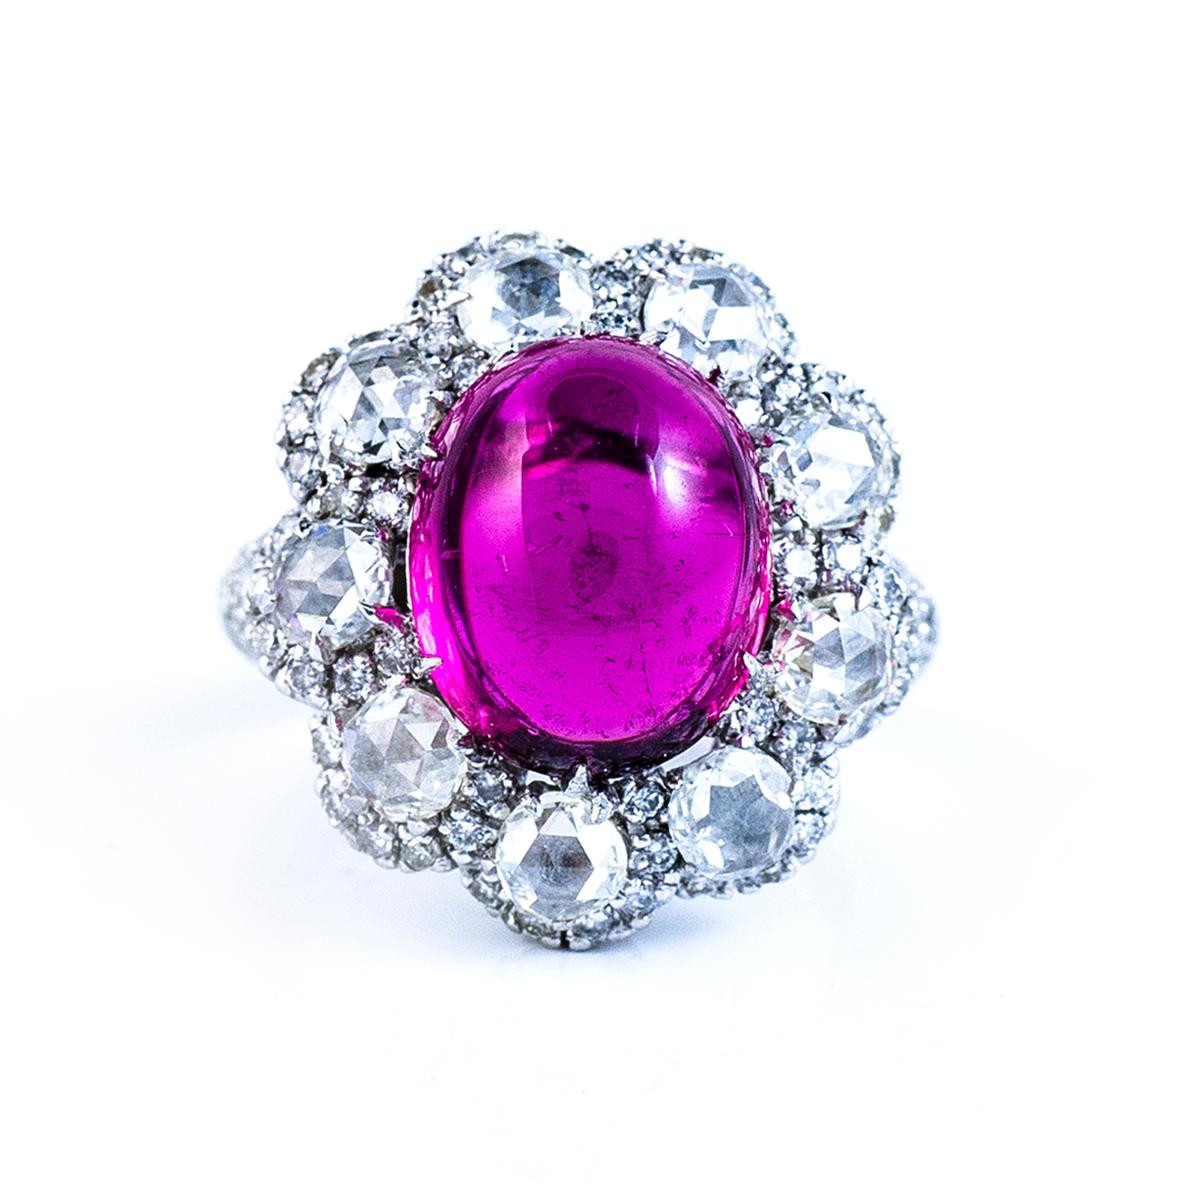 Vintage 9.18 CT Cabochon Rubellite Ring